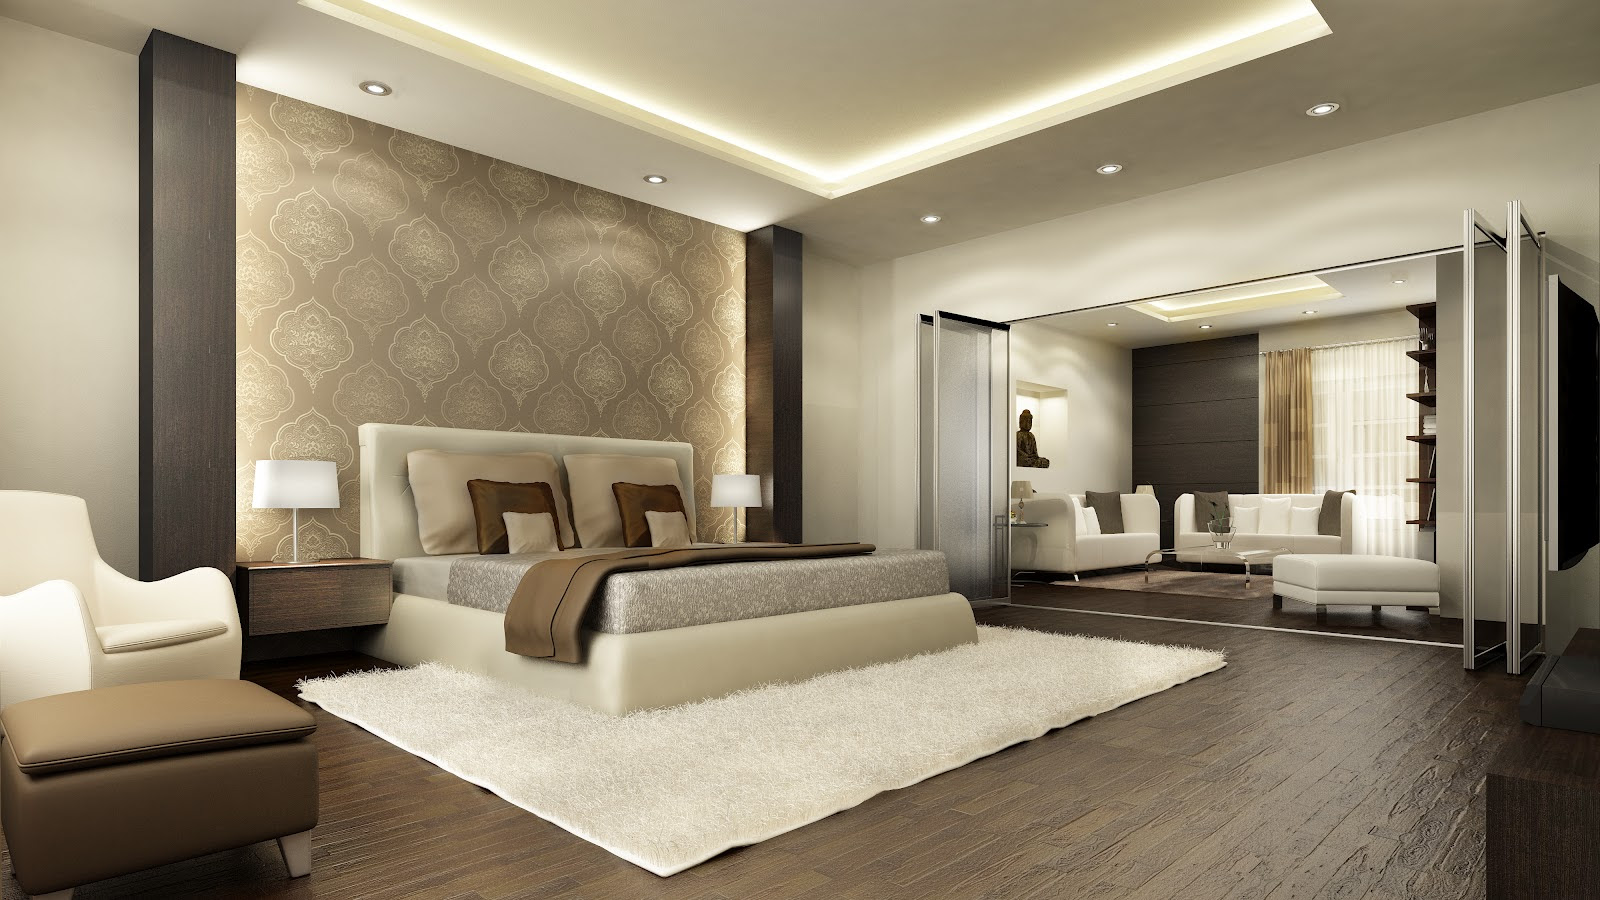 Bedroom Design Gallery For Inspiration - The WoW Style